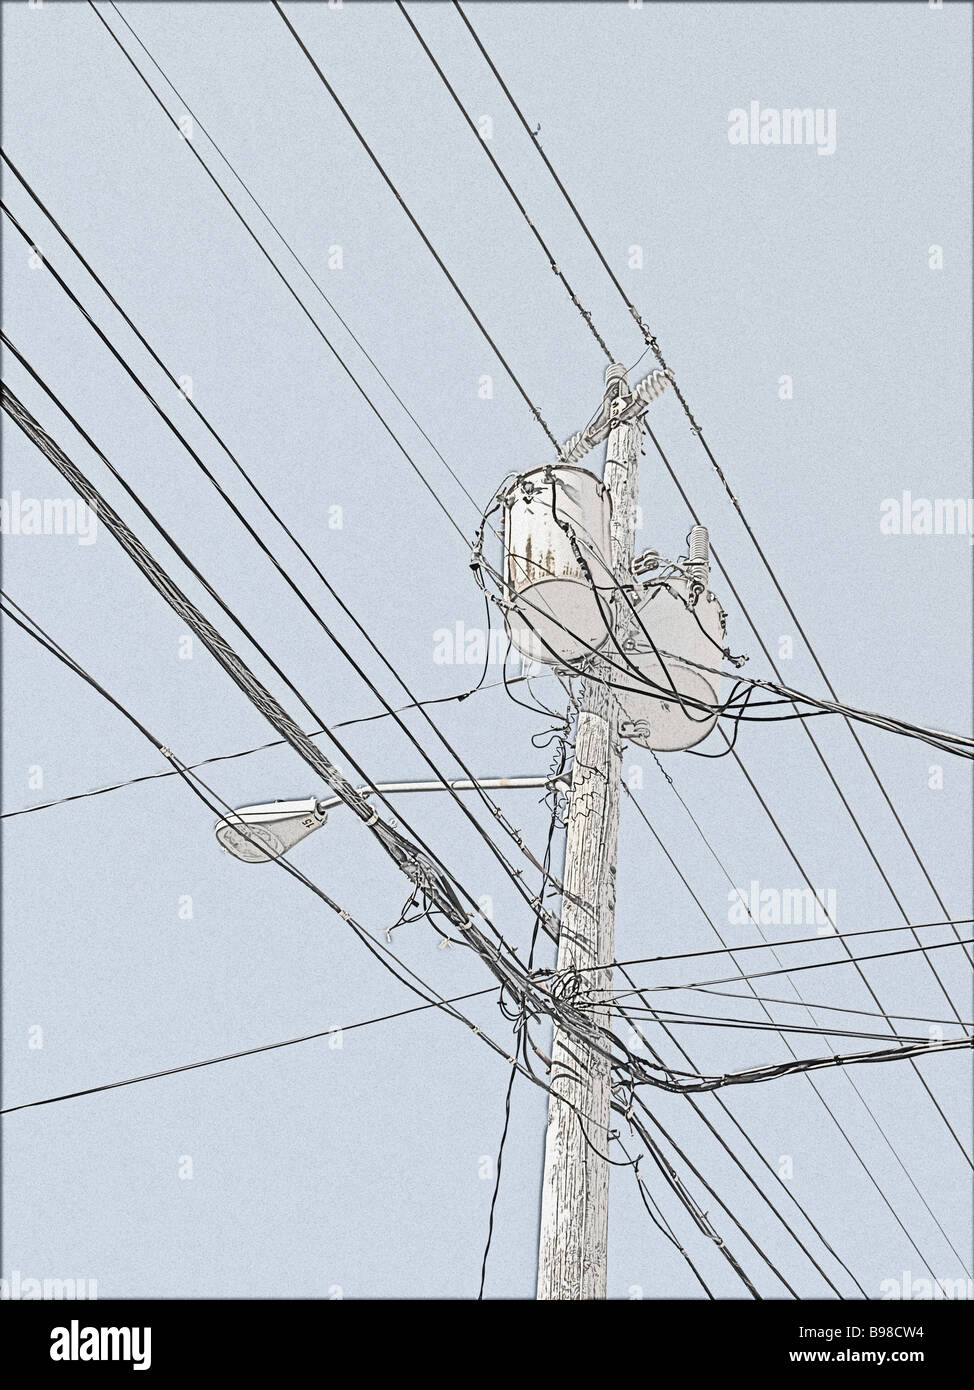 medium resolution of utility pole with generator street lamp and wires in a drawing type image from photograph